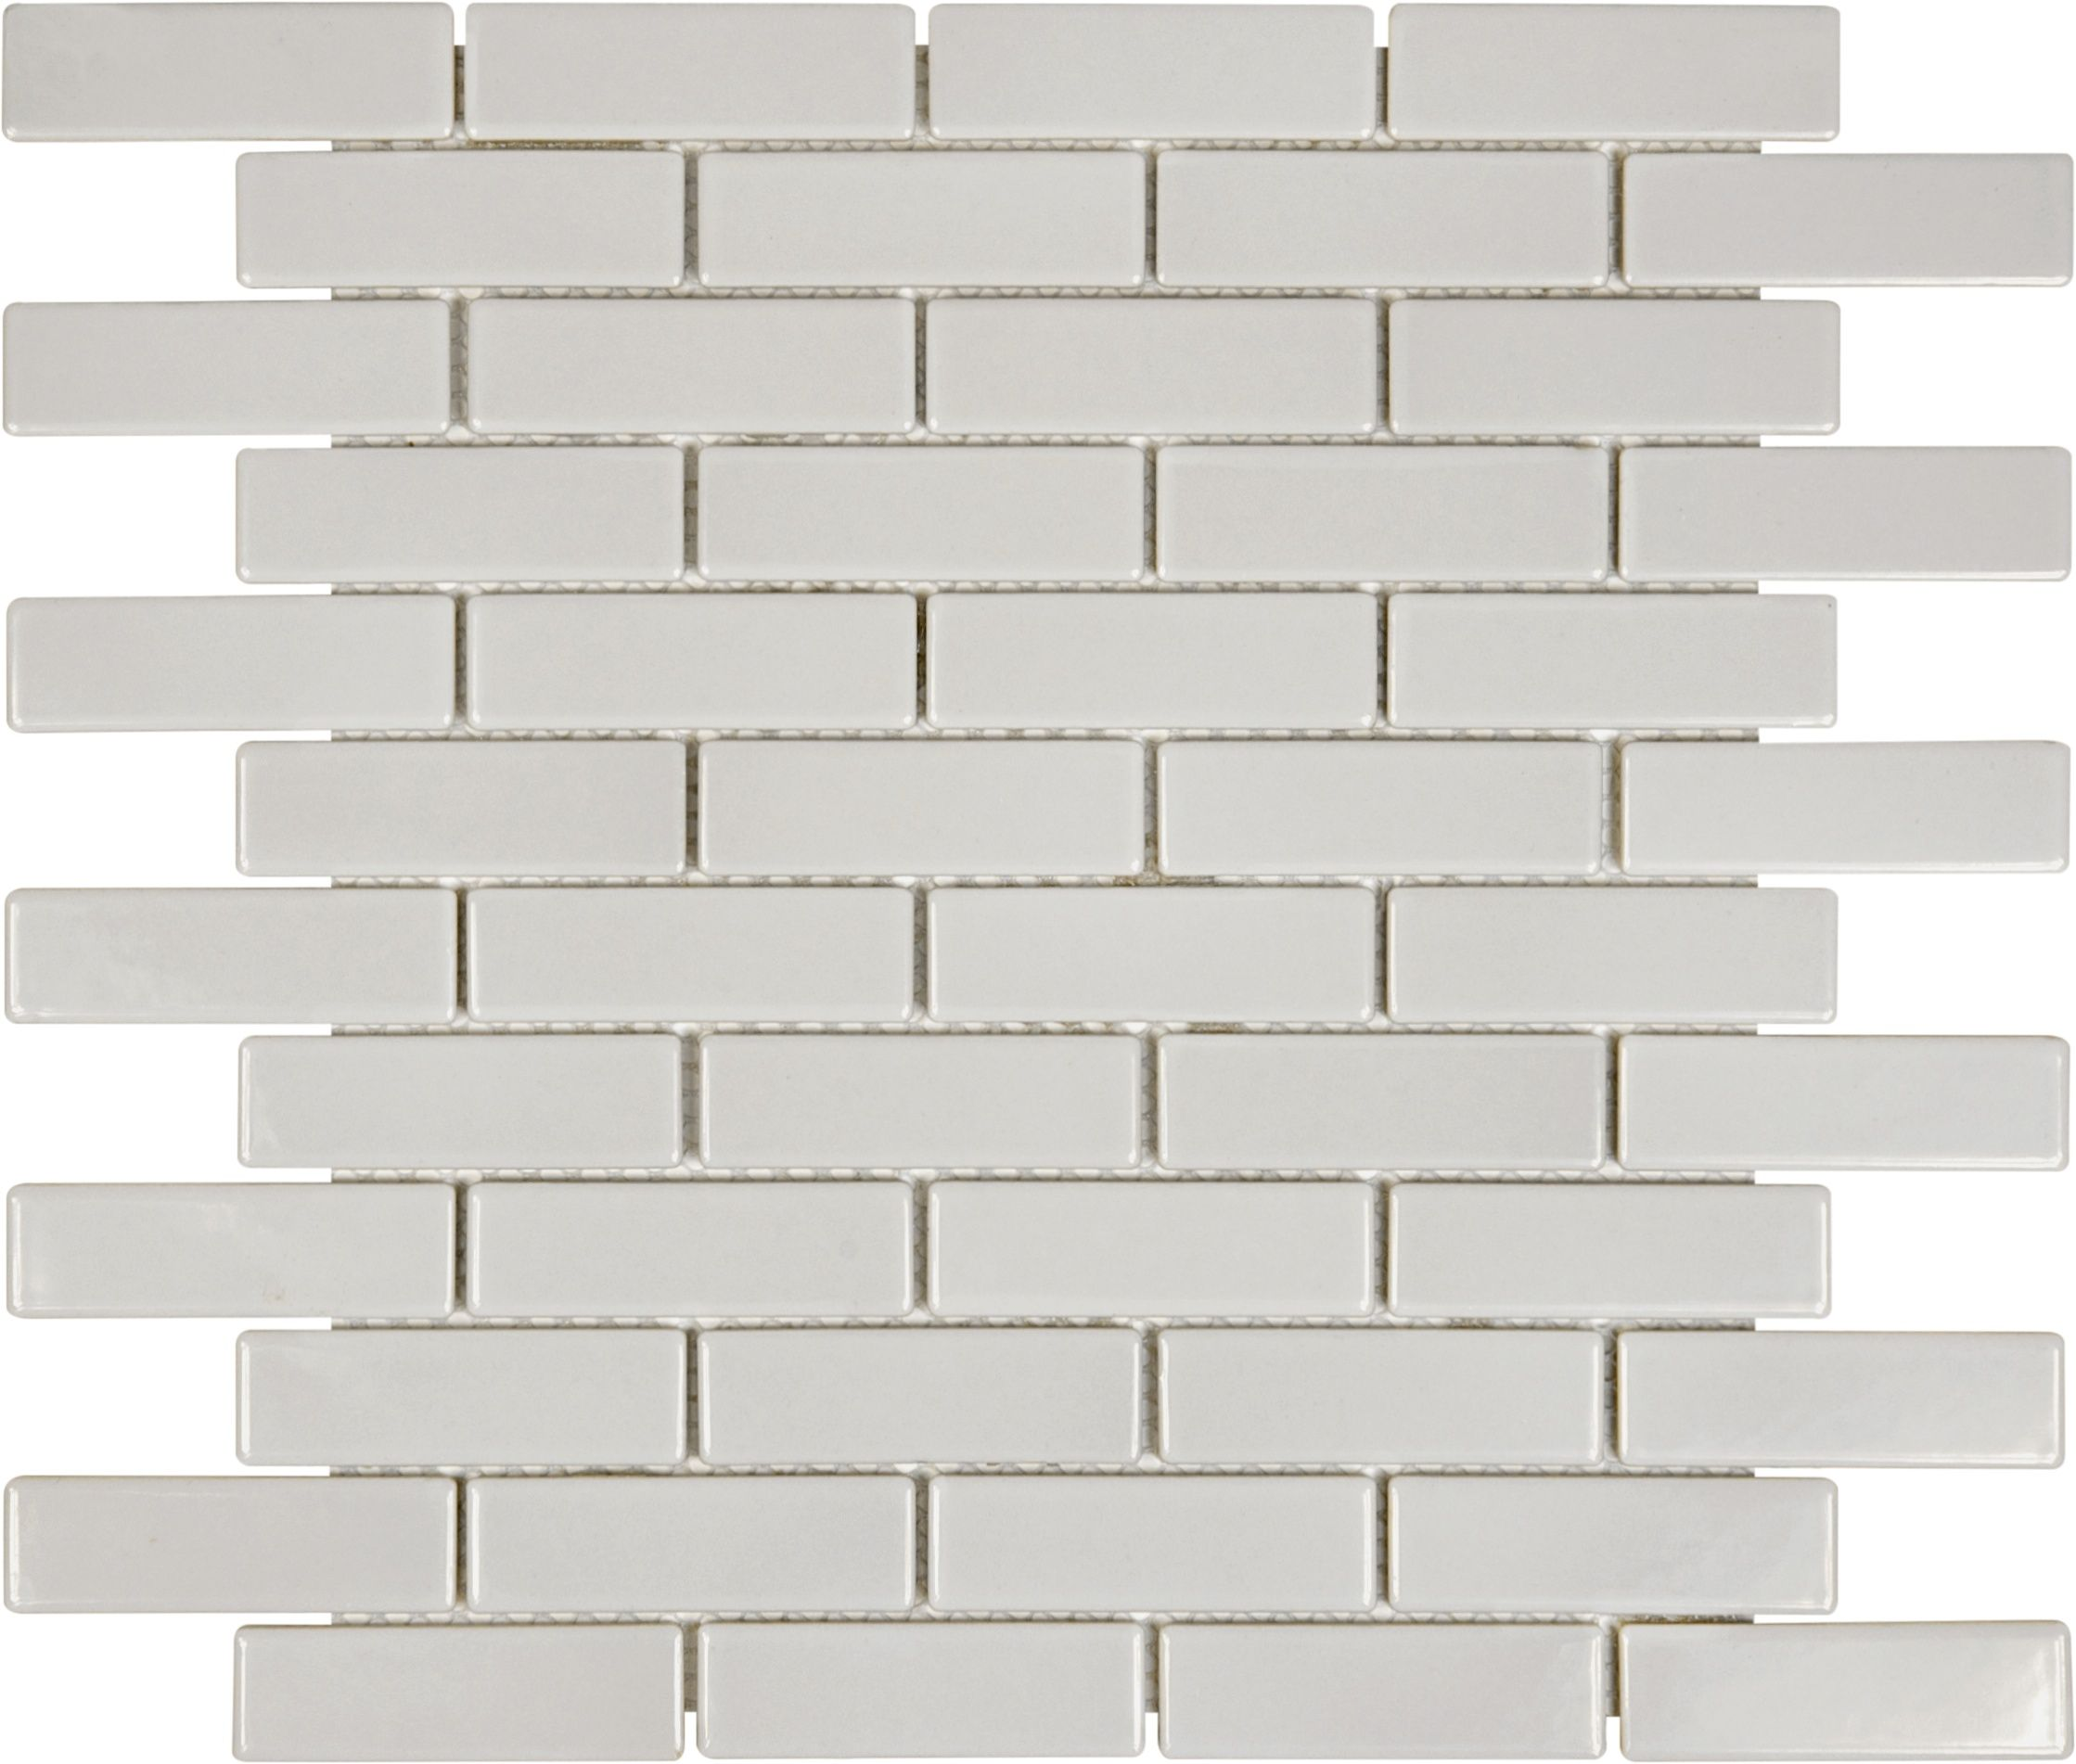 Brick ceramic tile tile design ideas warm grey mini brick mosaic gray ceramic dailygadgetfo Gallery